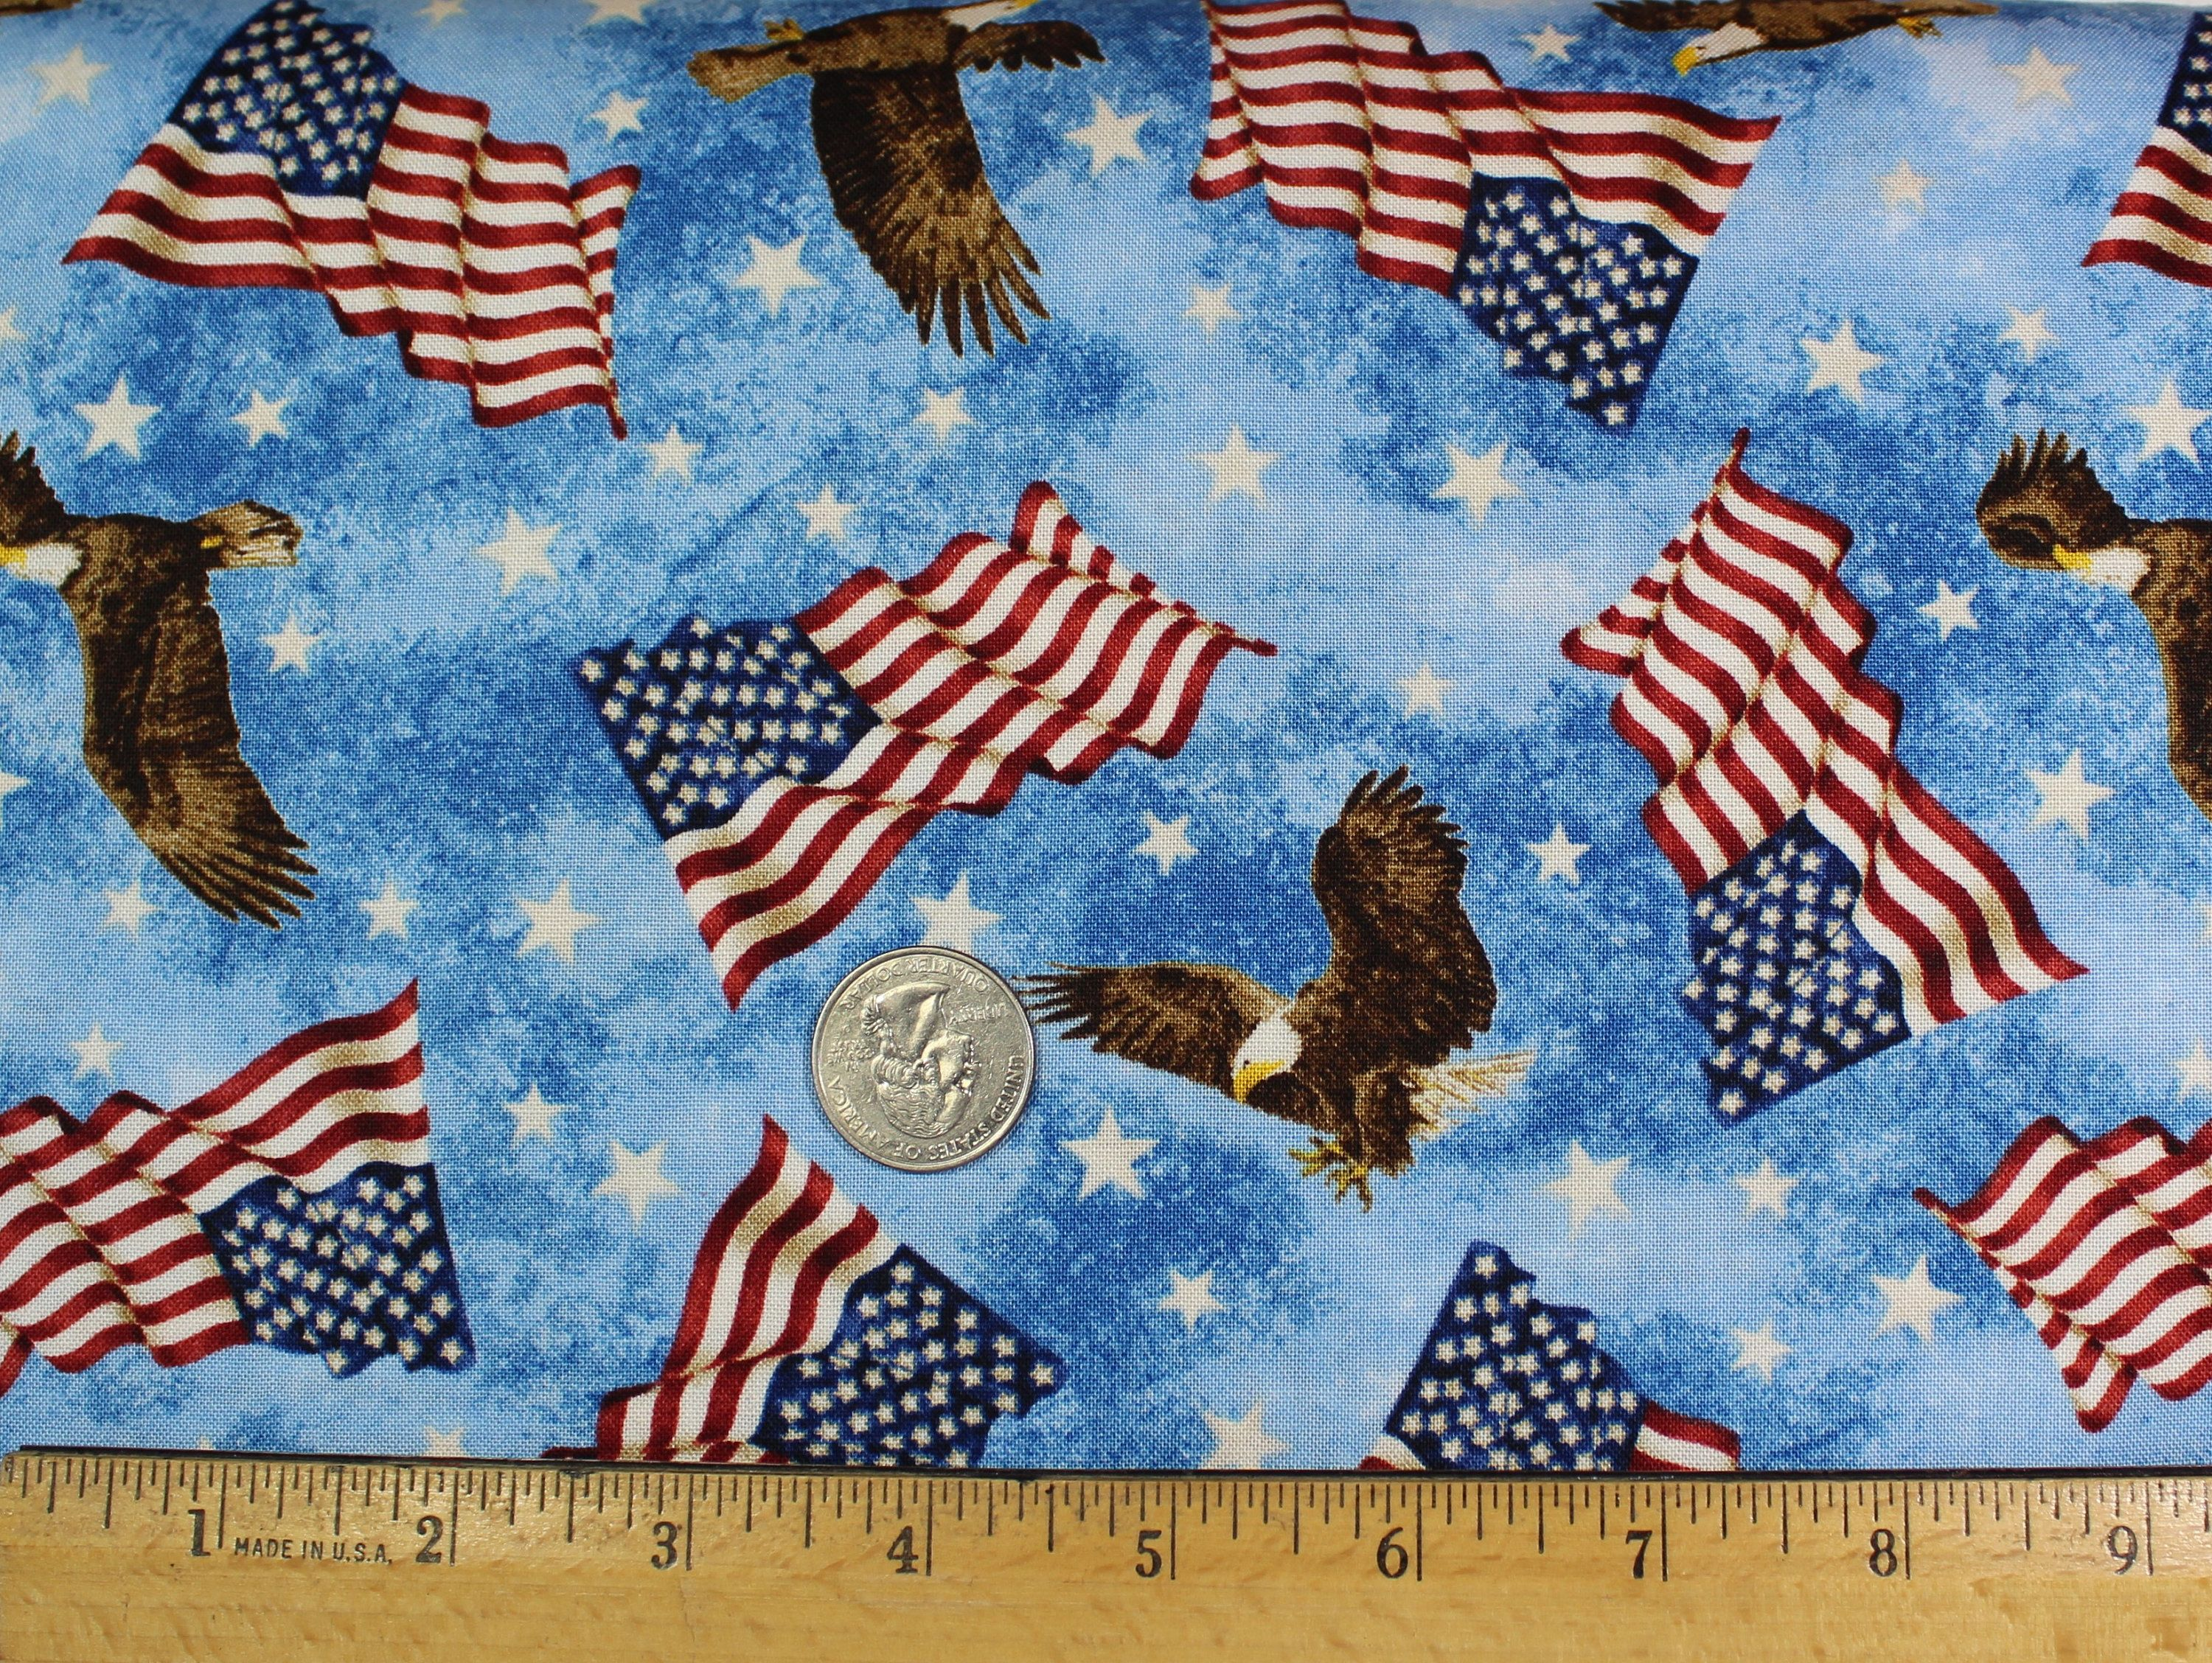 Made in the USA Flag American Flags Stars /& Stripes Cotton Fabric By The Yard